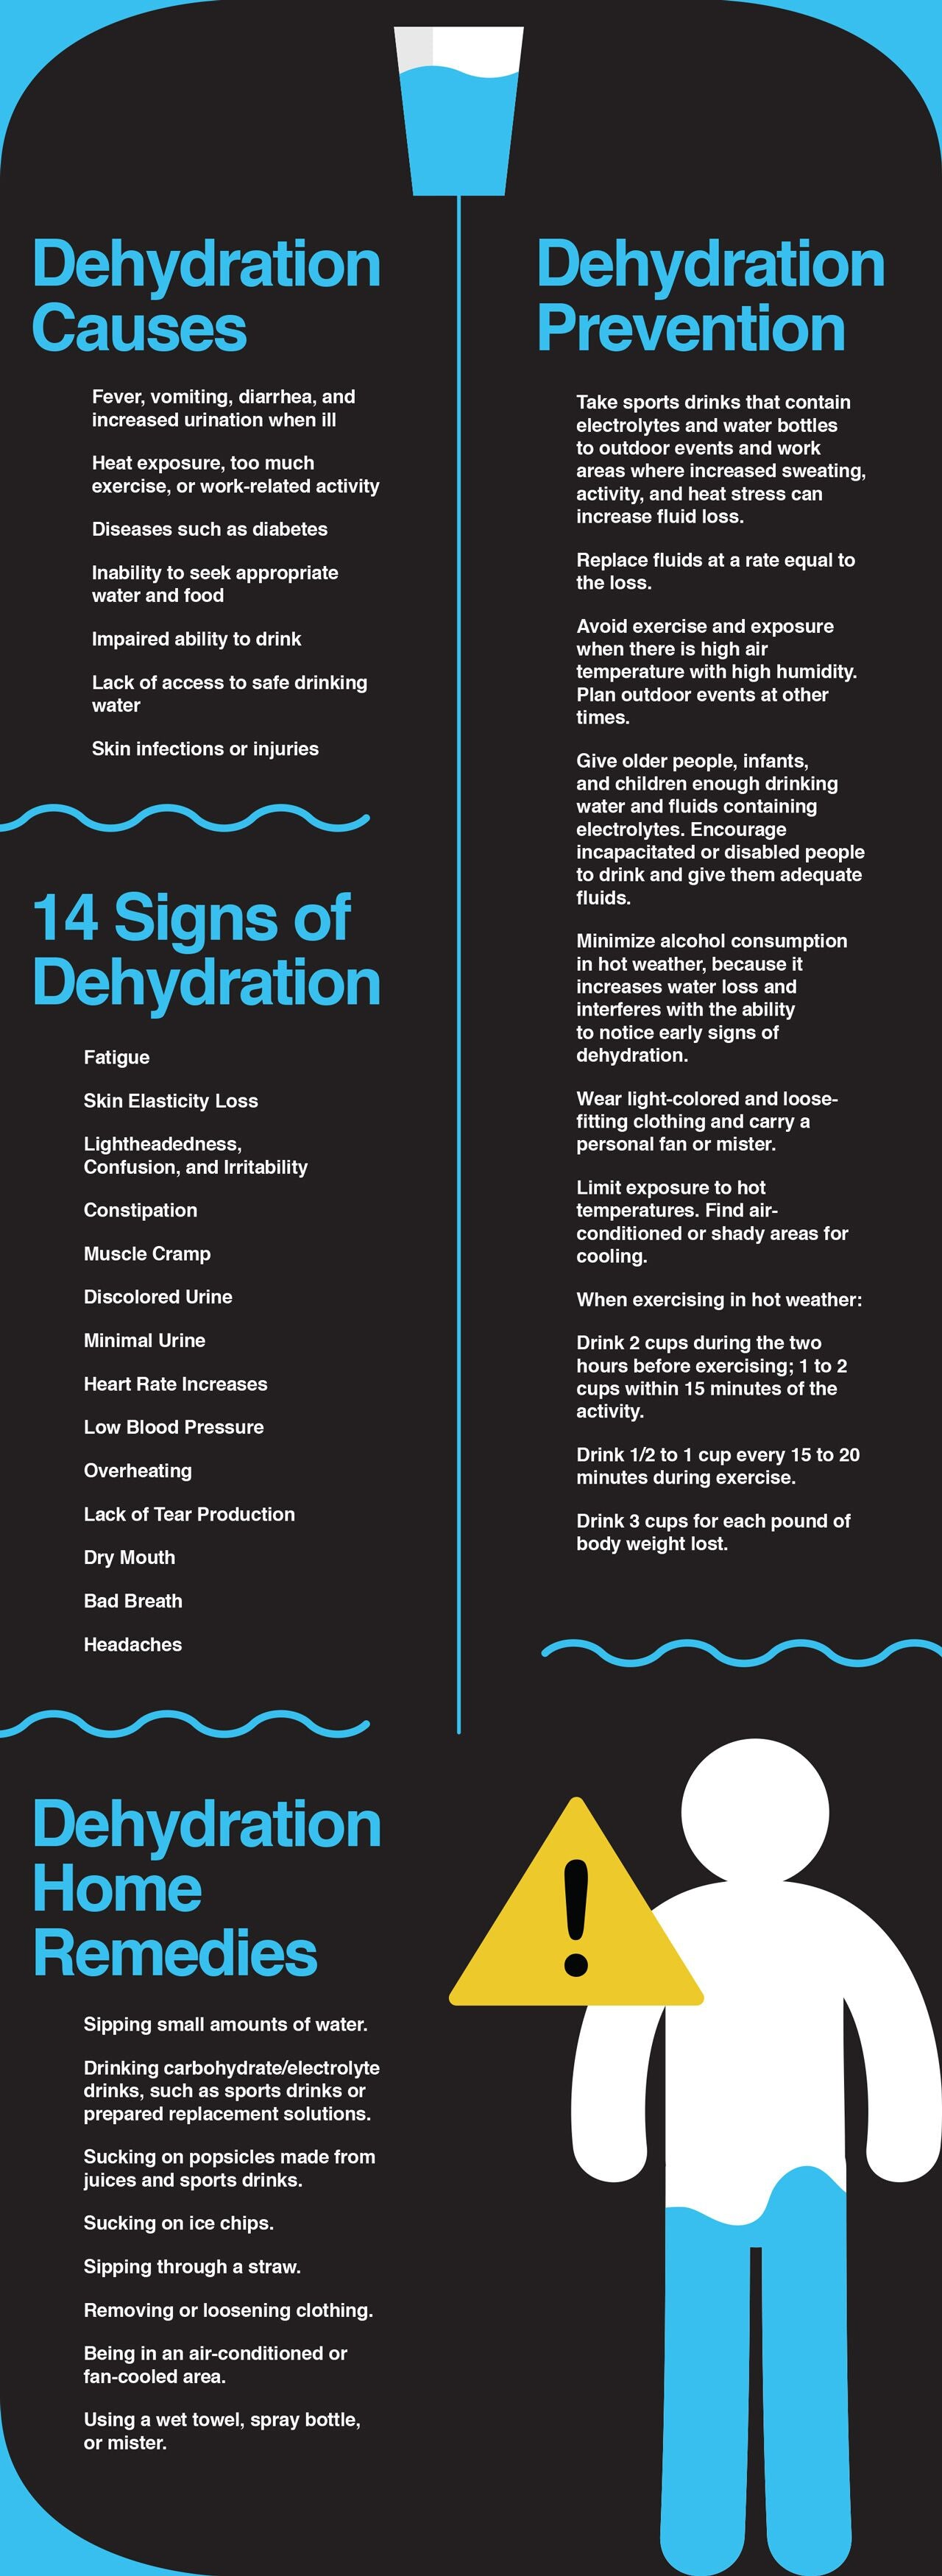 Know the 14 signs of dehydration.